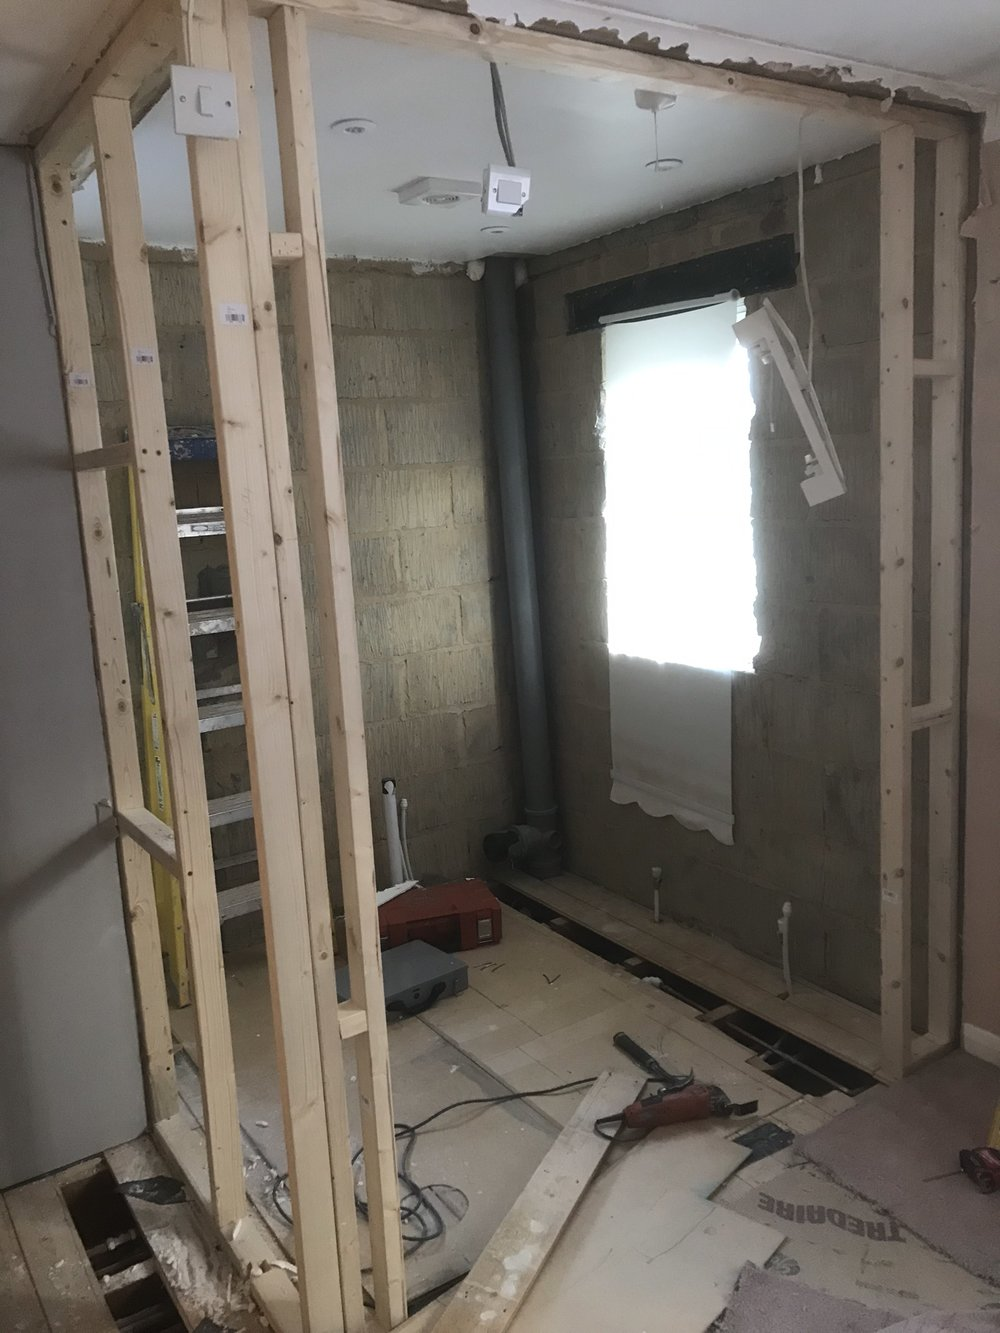 New walls going in